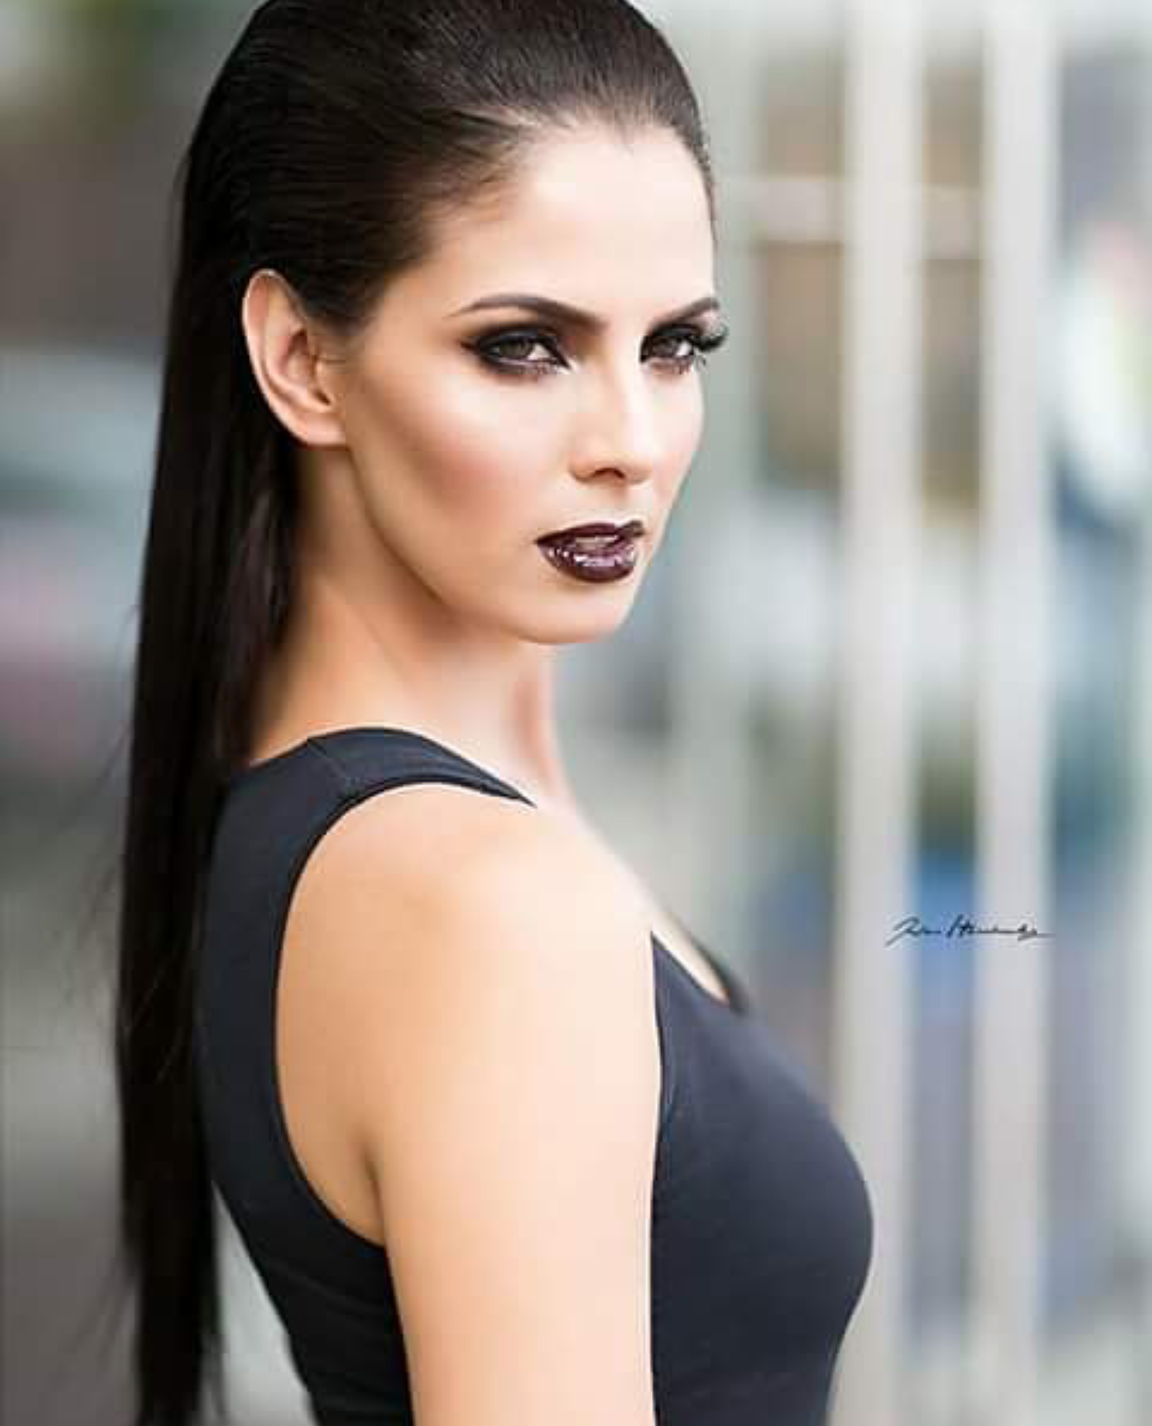 mariana berumen, top 36 de miss model of the world 2018/top 15 de miss world 2012 12d77510